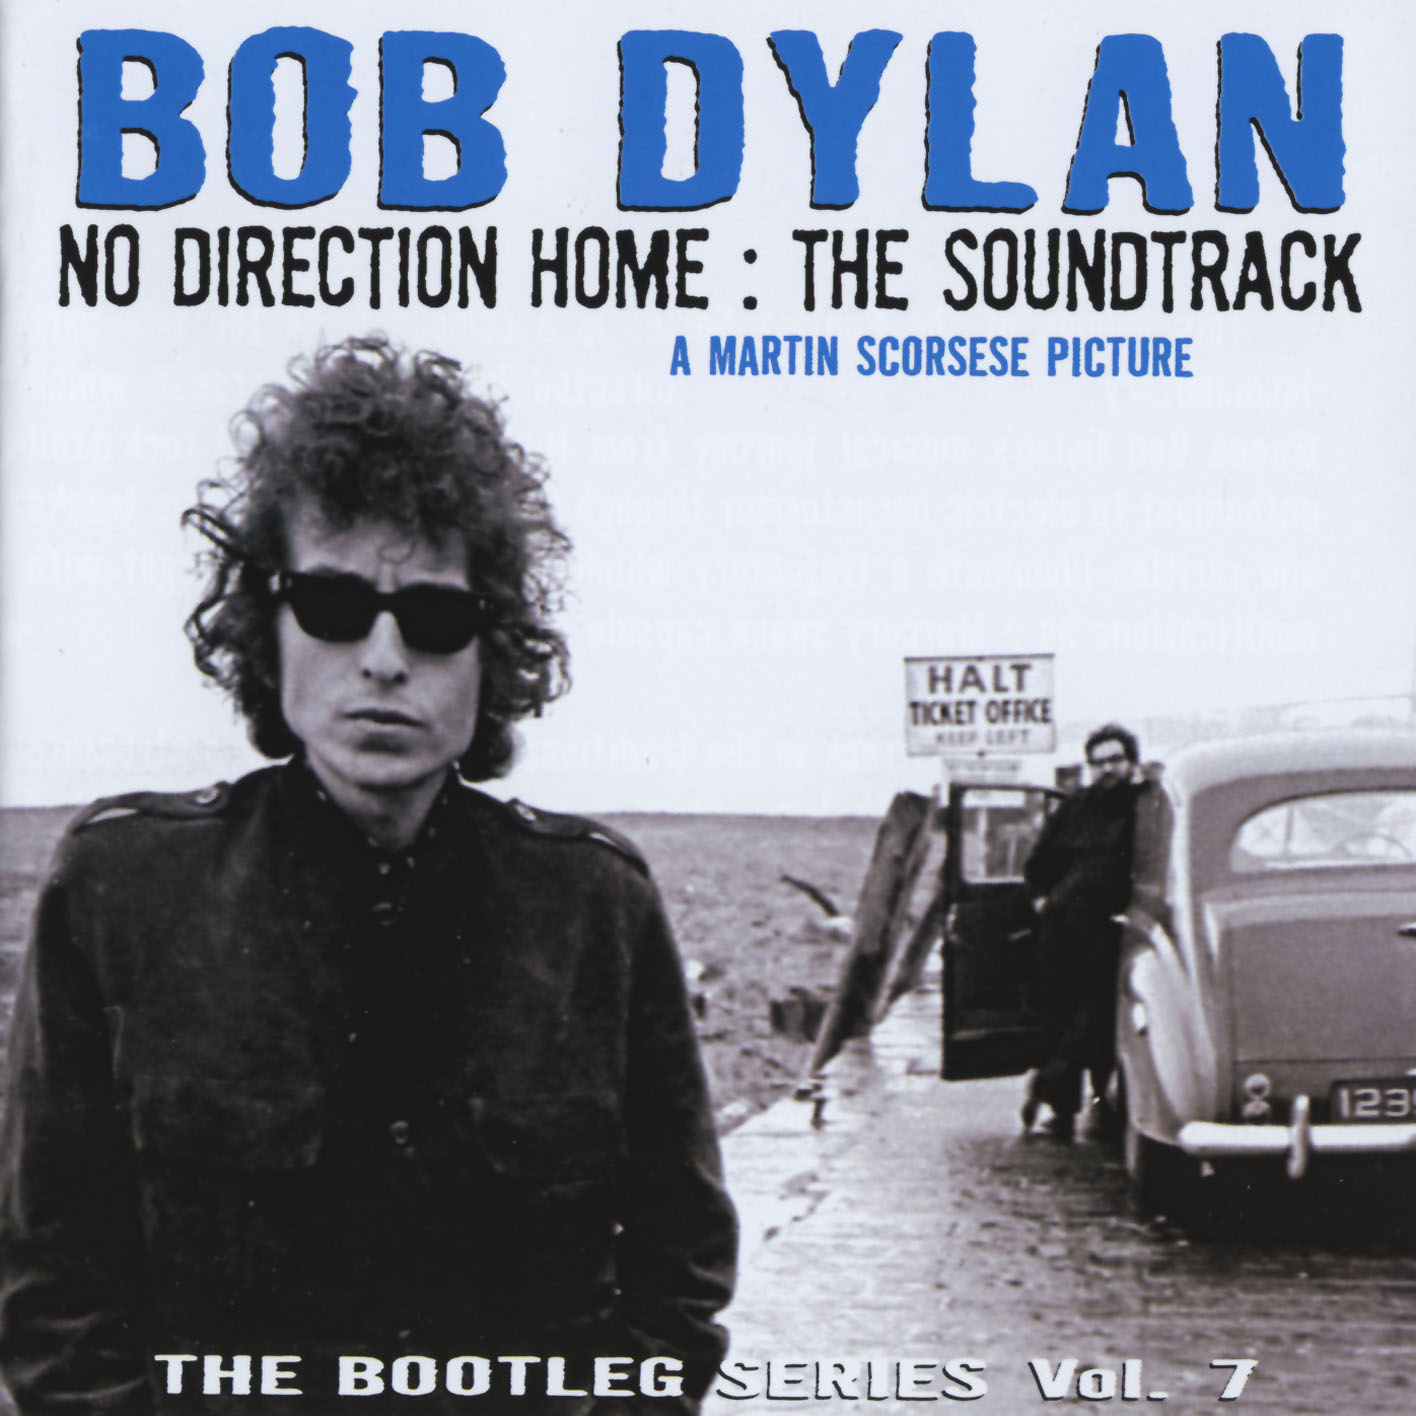 The Bootleg Series, Vol. 7 – No Direction Home: The Soundtrack